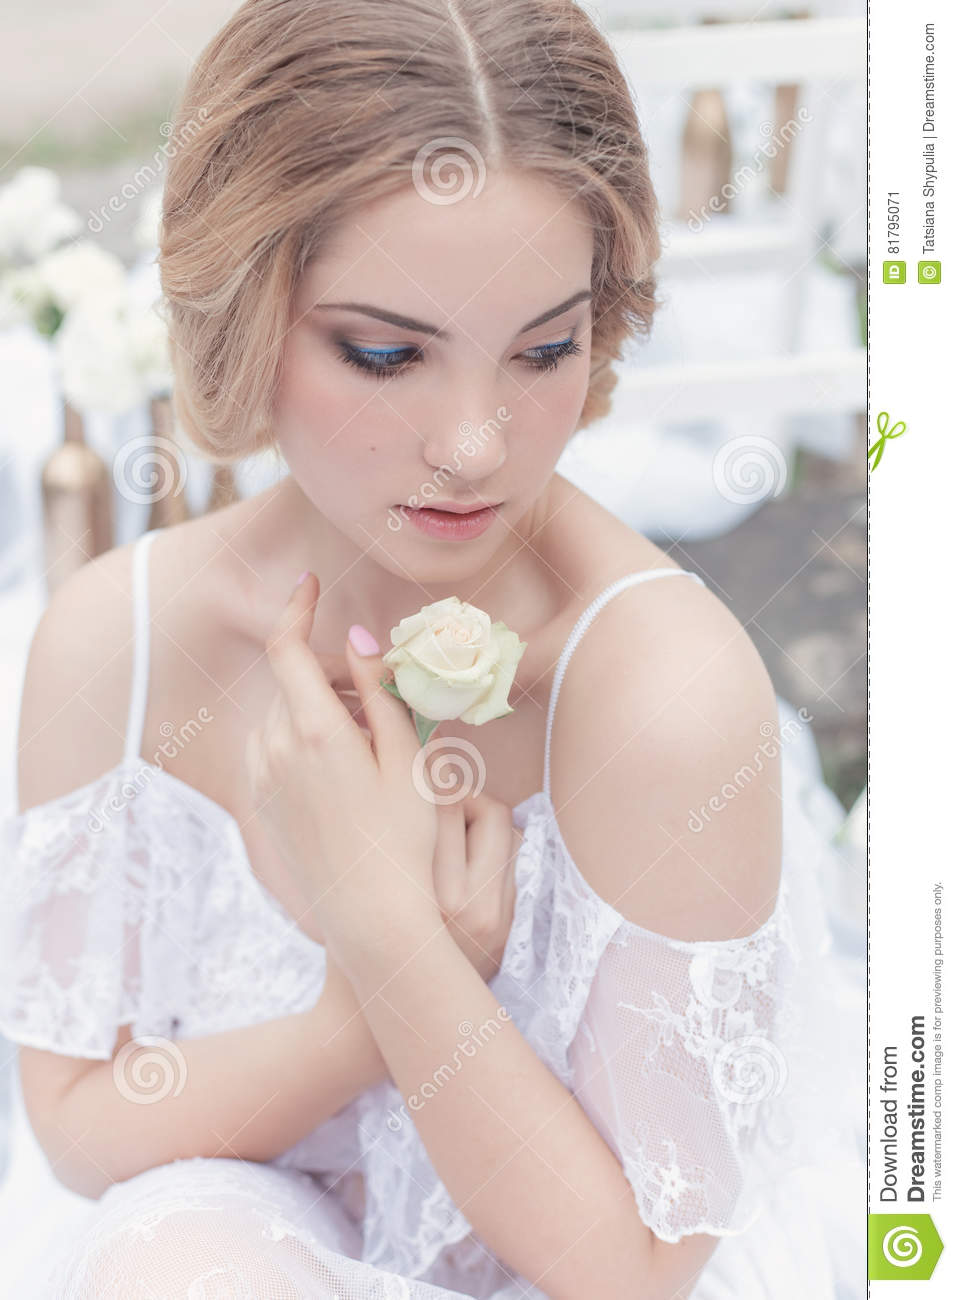 Download Beautiful Young Sweet Blonde Girl With Wedding Bouquet In The Hands Of The Boudoir In